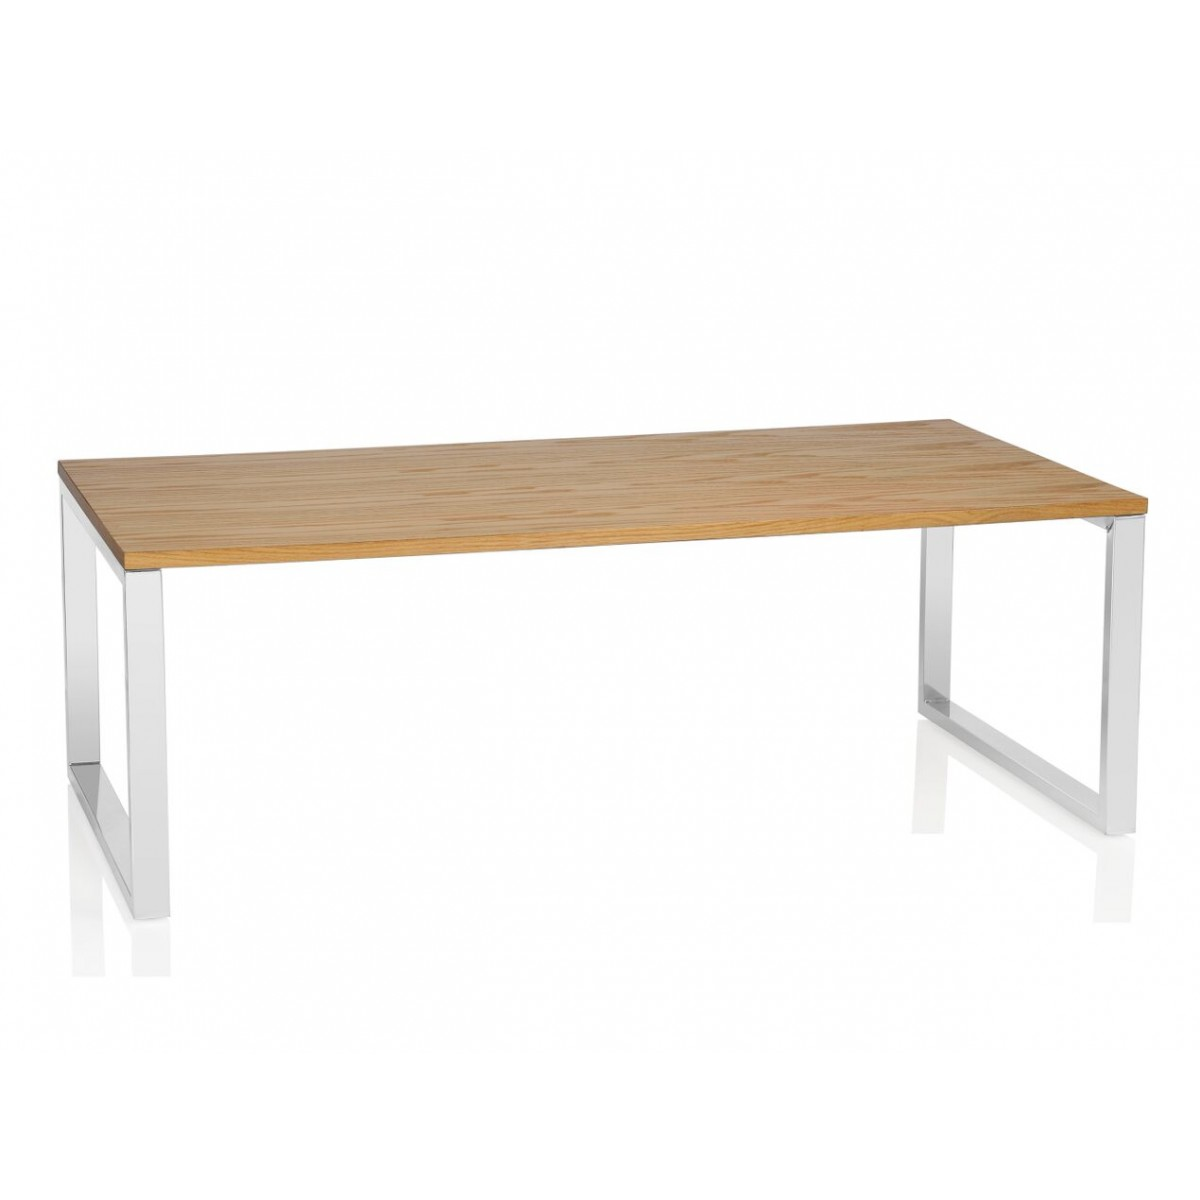 Table basse design rectangulaire 120 cm mooviin - Table basse rectangulaire design ...